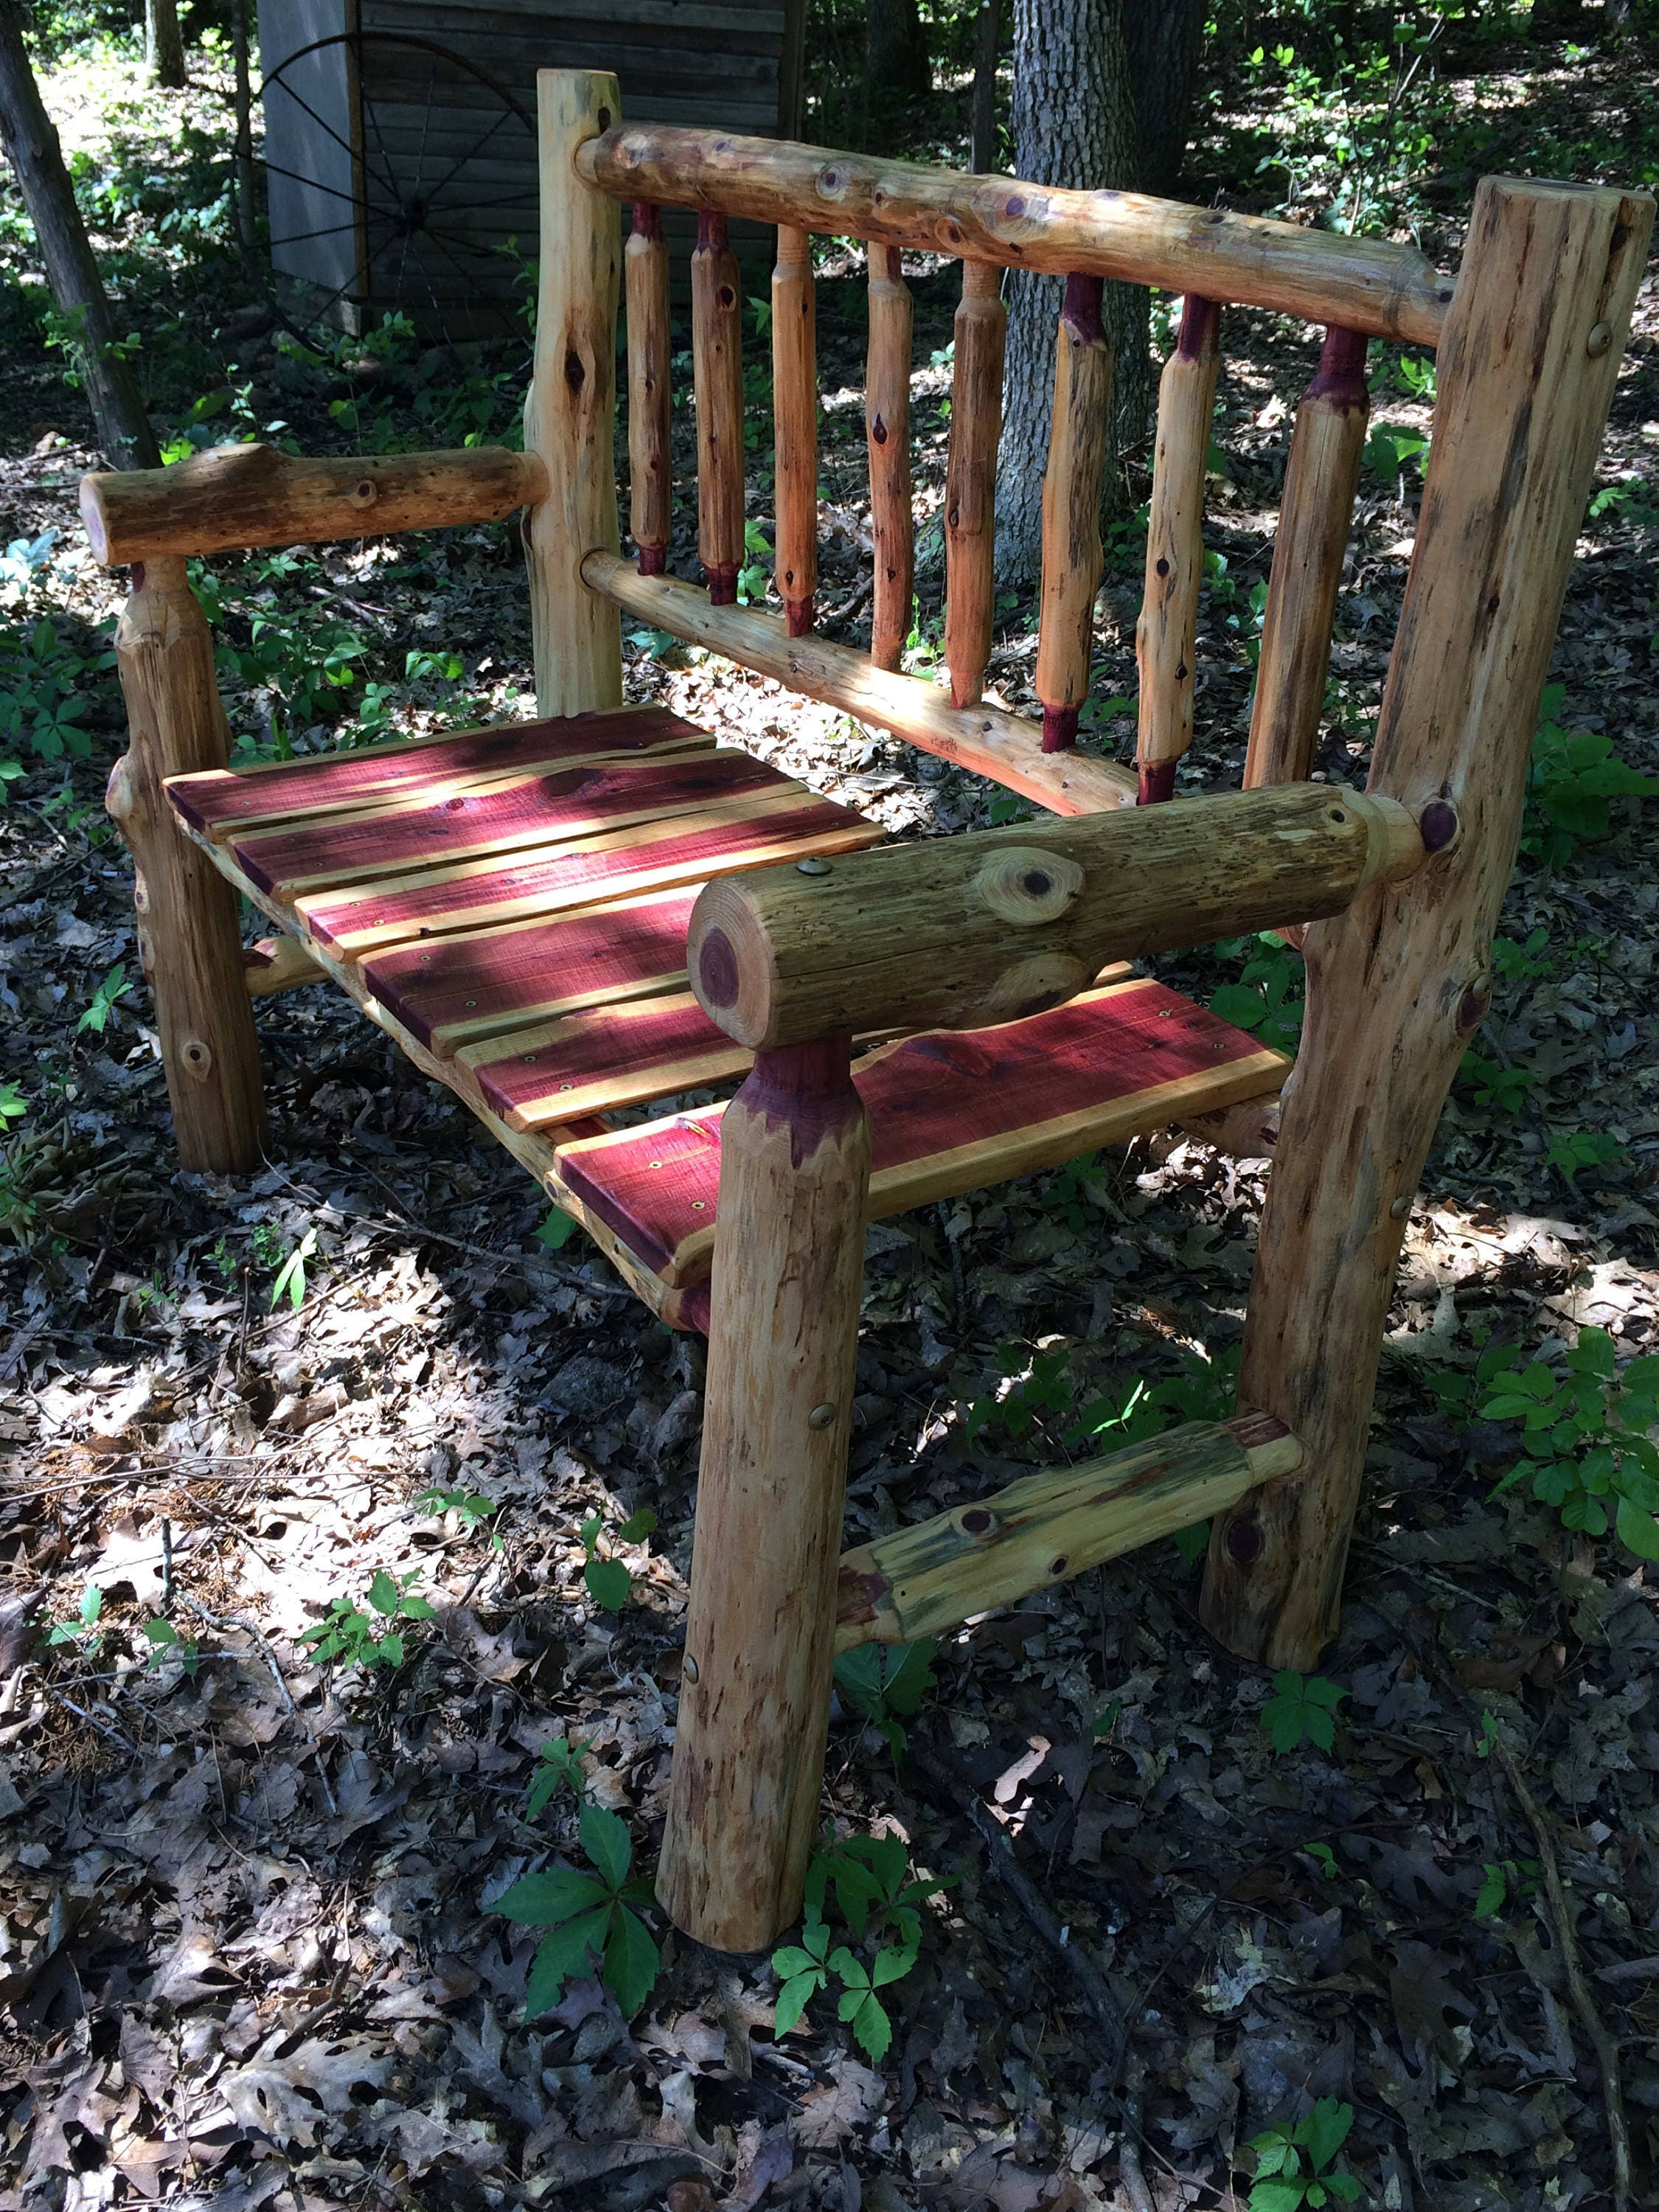 Free Shipping   4 Foot Rustic Log Porch Bench   Cedar Bench   Fire Pit  Bench   Rustic Patio Furniture   Wedding Gift   Outdoor Bench